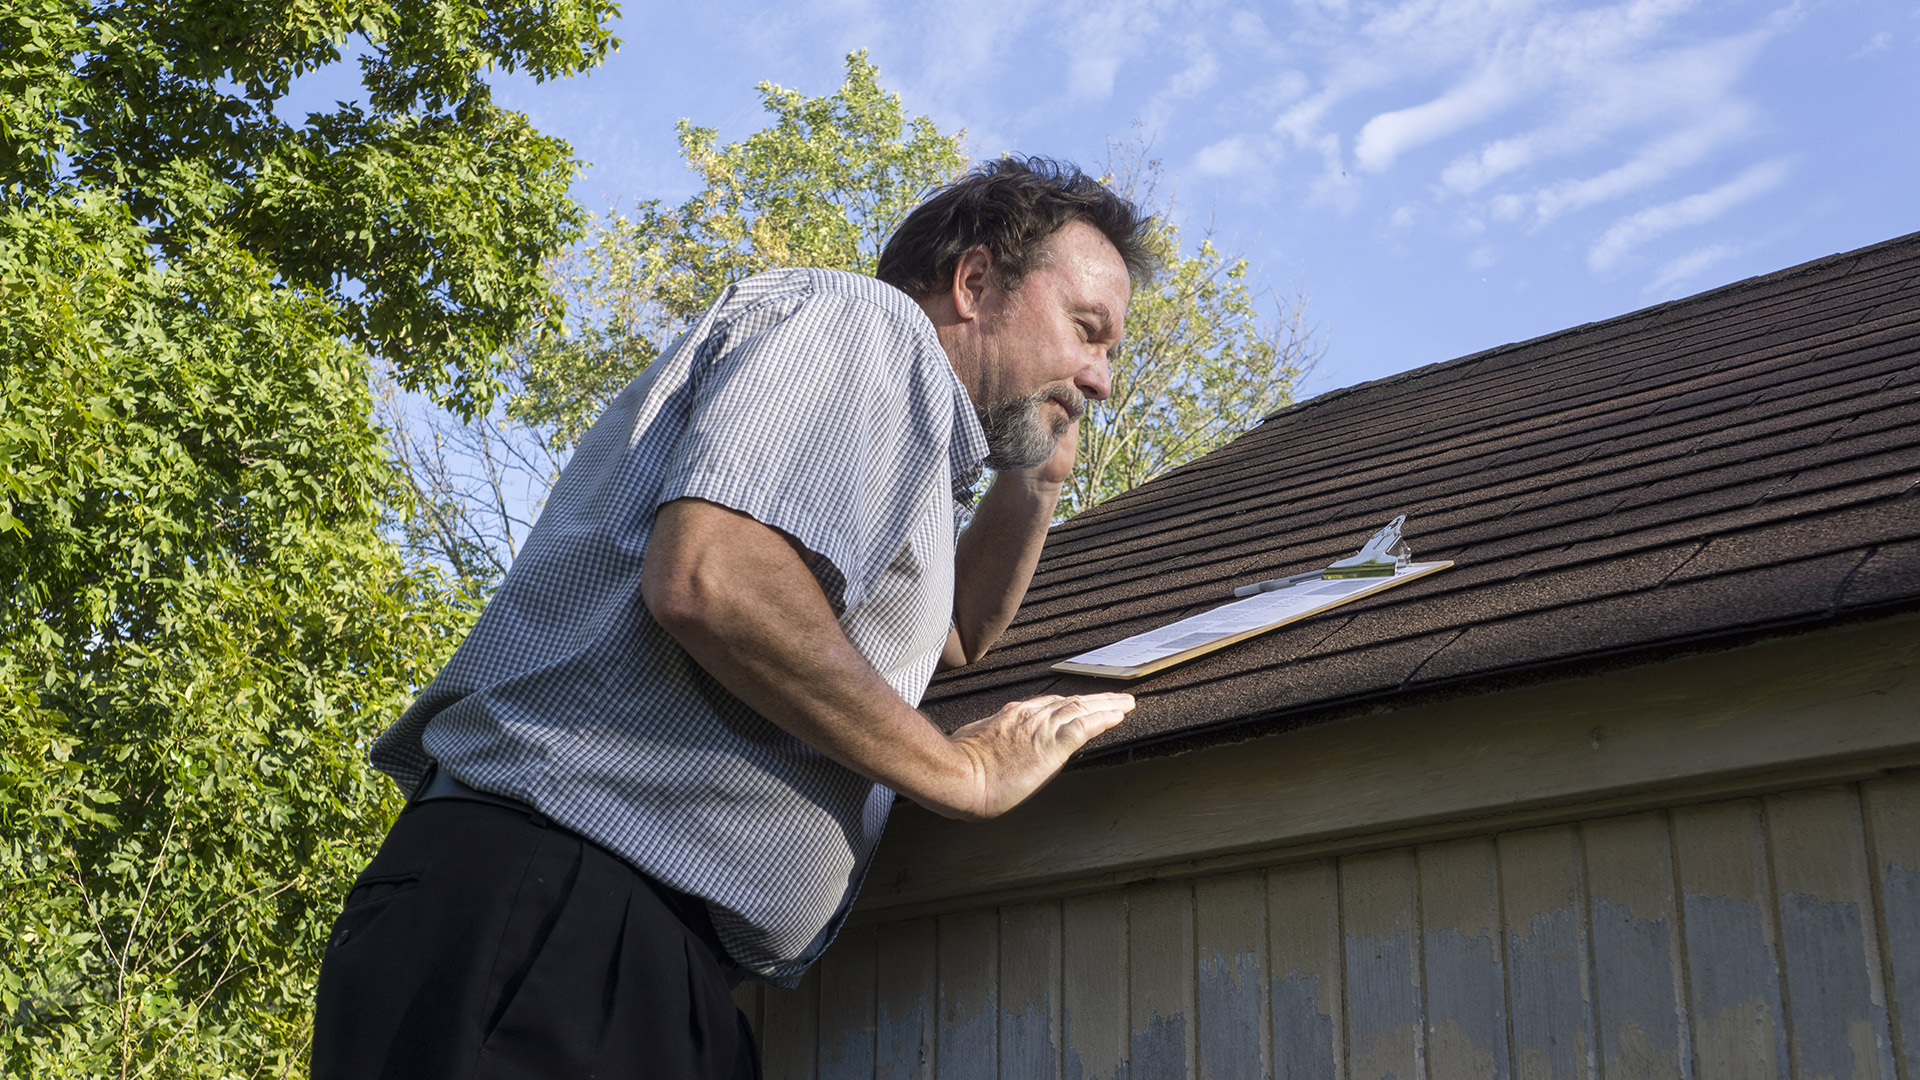 Roof Repair in Greeley, Erie CO, Brighton CO